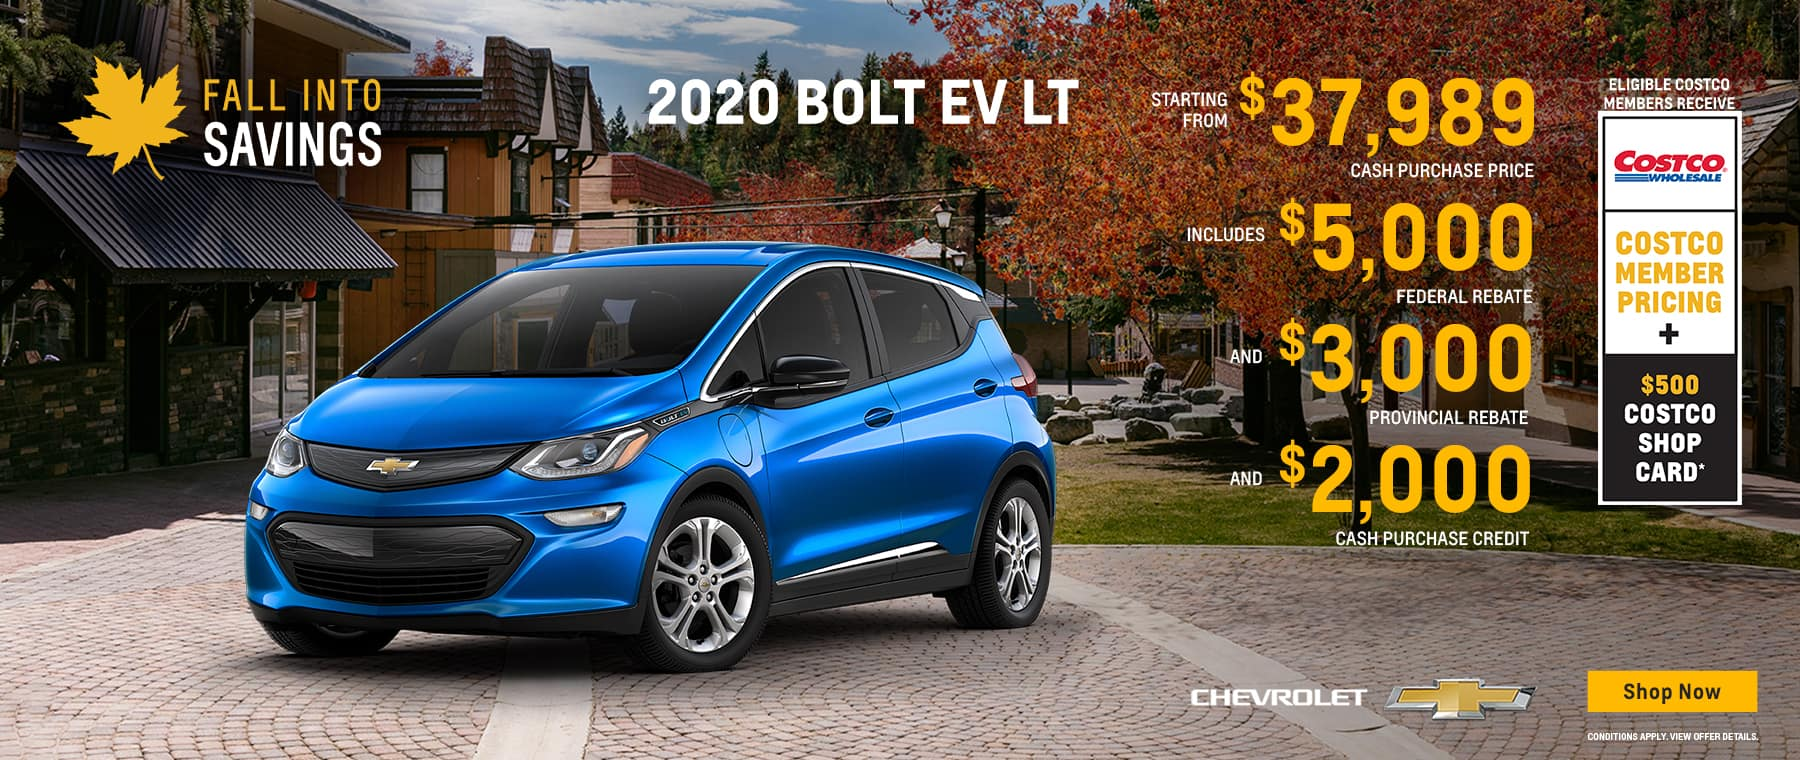 2020_OCT_WST_Chevy_T3_EN_1800x760_BOLT